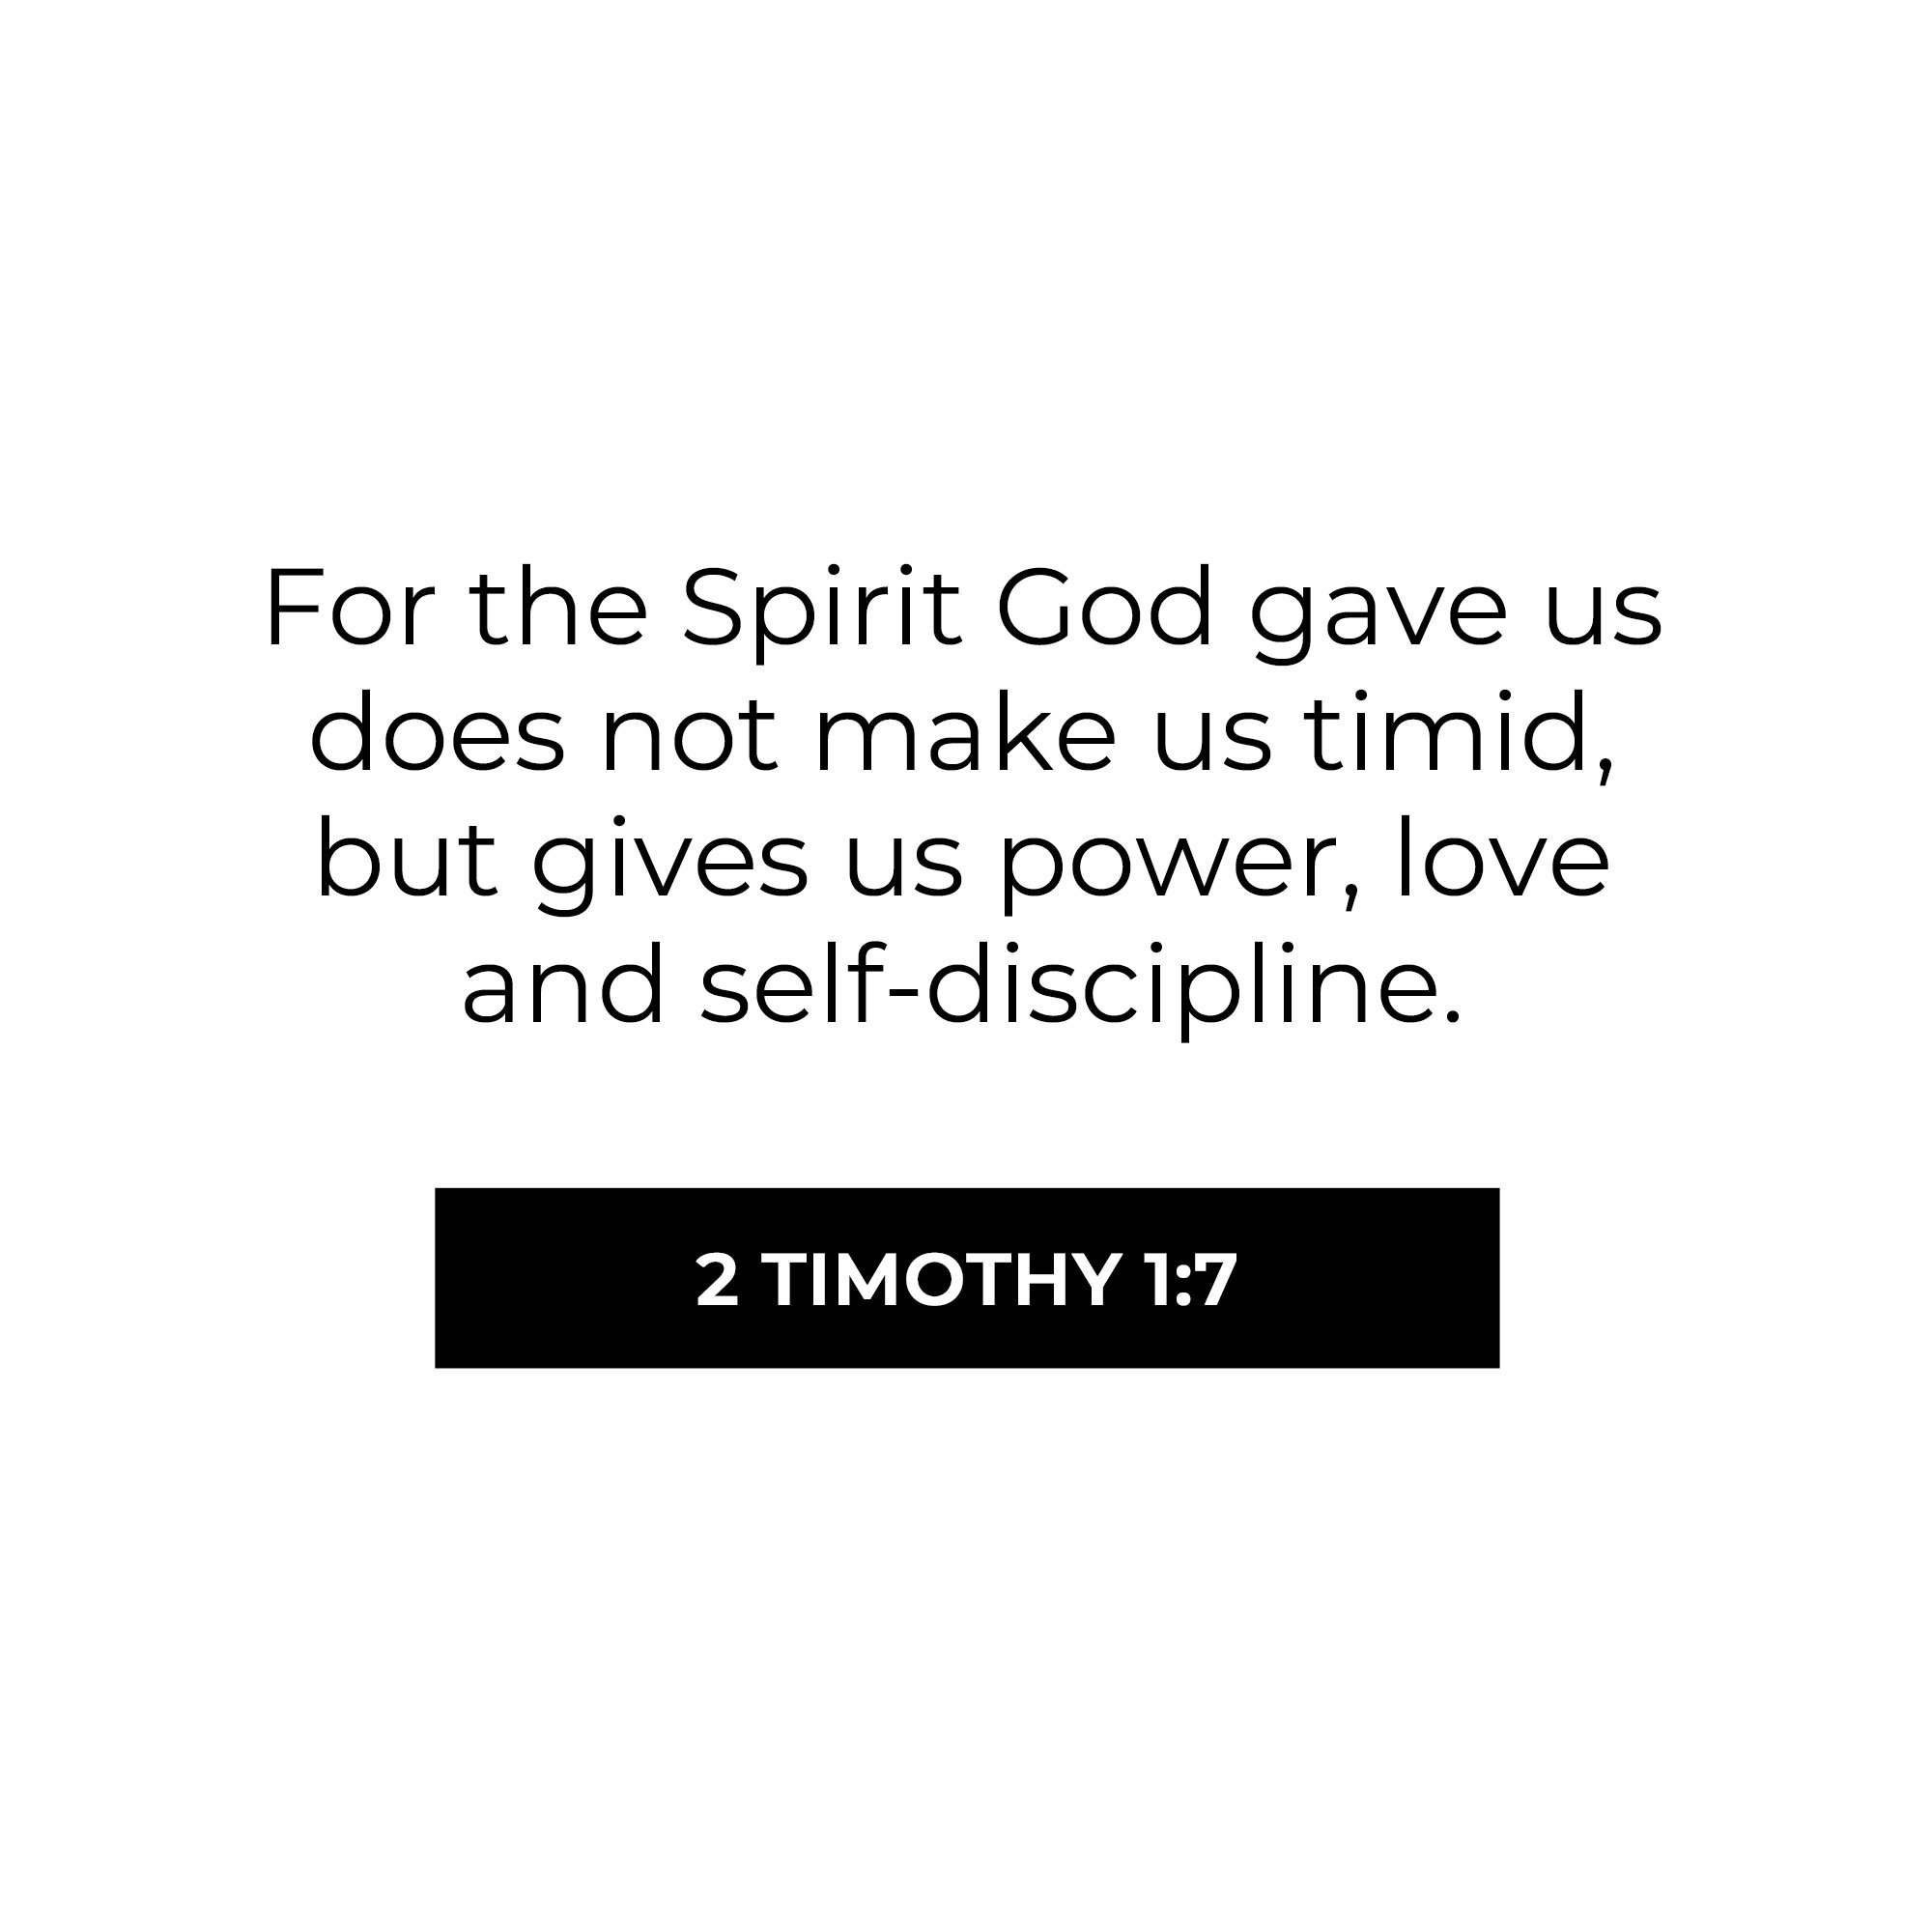 For God did not give us a Spirit of fear but of power and love and self-control. https://t.co/SqYPSxXHza